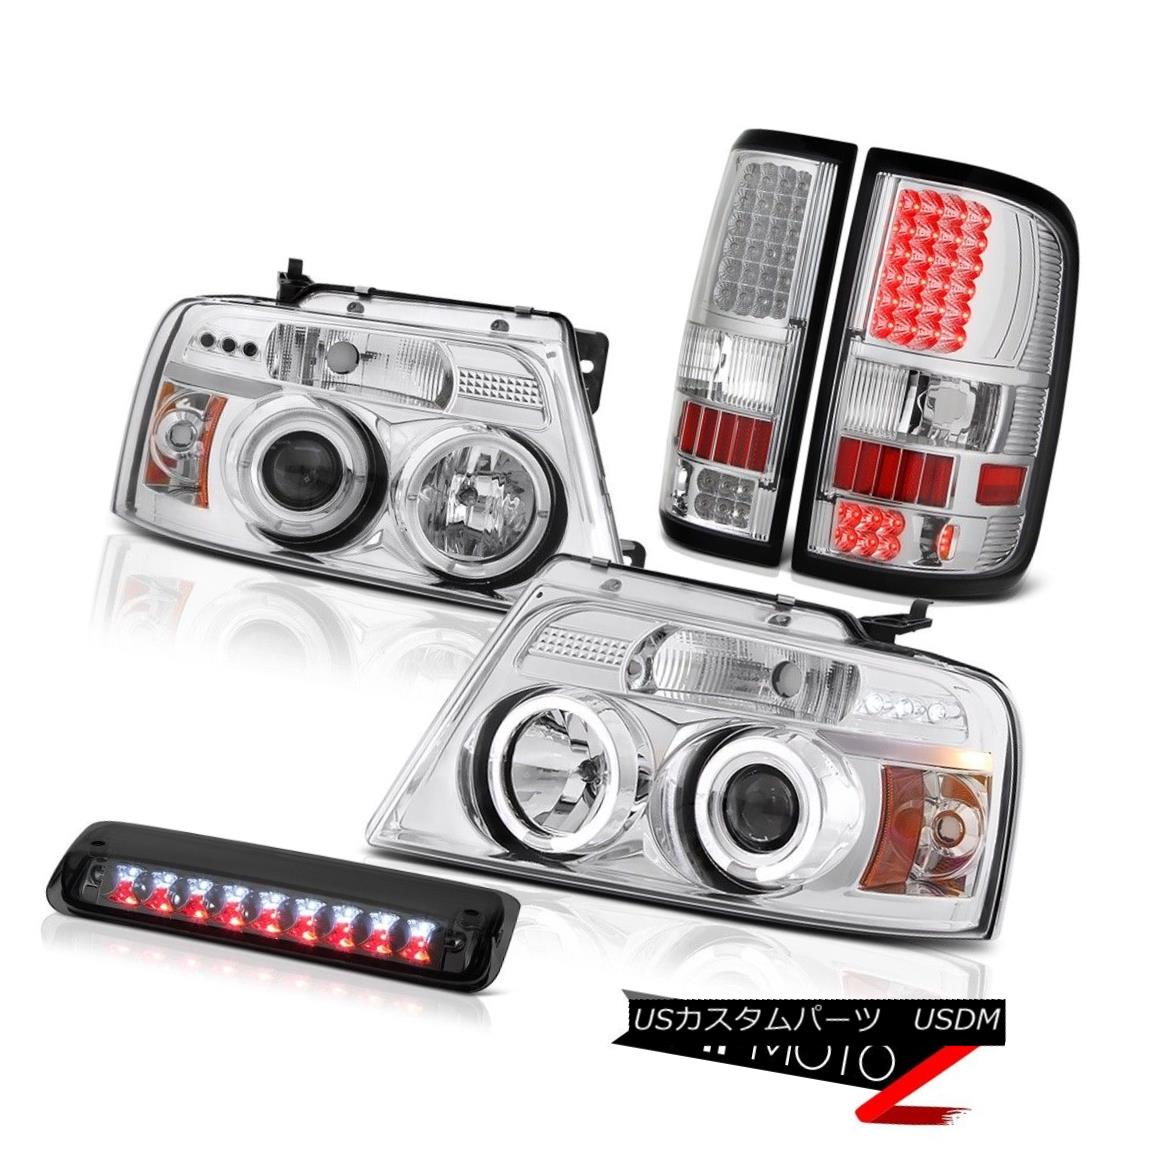 テールライト 04 05 06 07 08 Ford F150 STX 3RD Brake Lamp Rear Lights Headlights